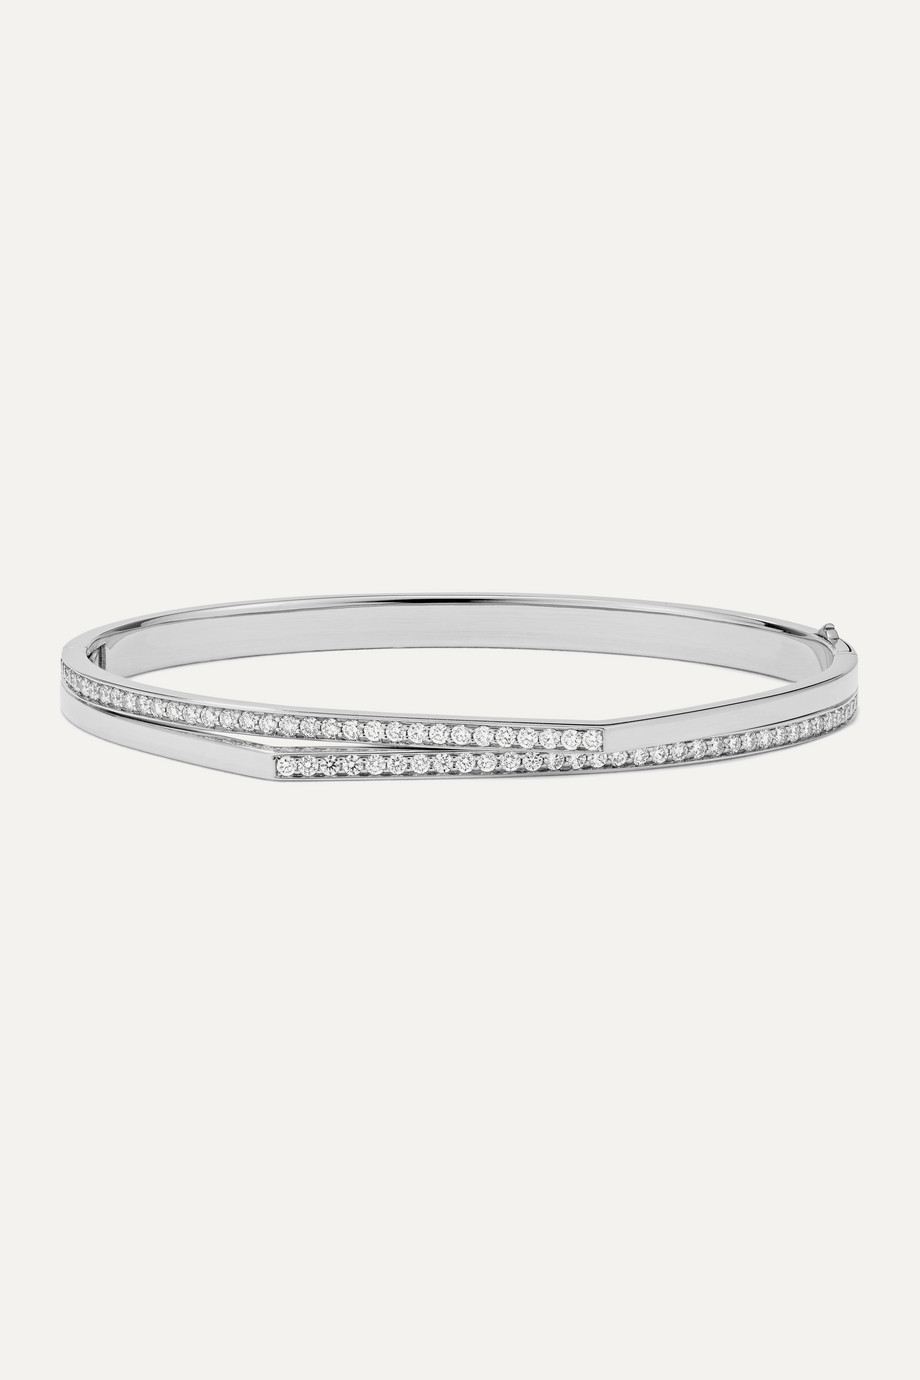 Repossi Antifer 18-karat white gold diamond bracelet